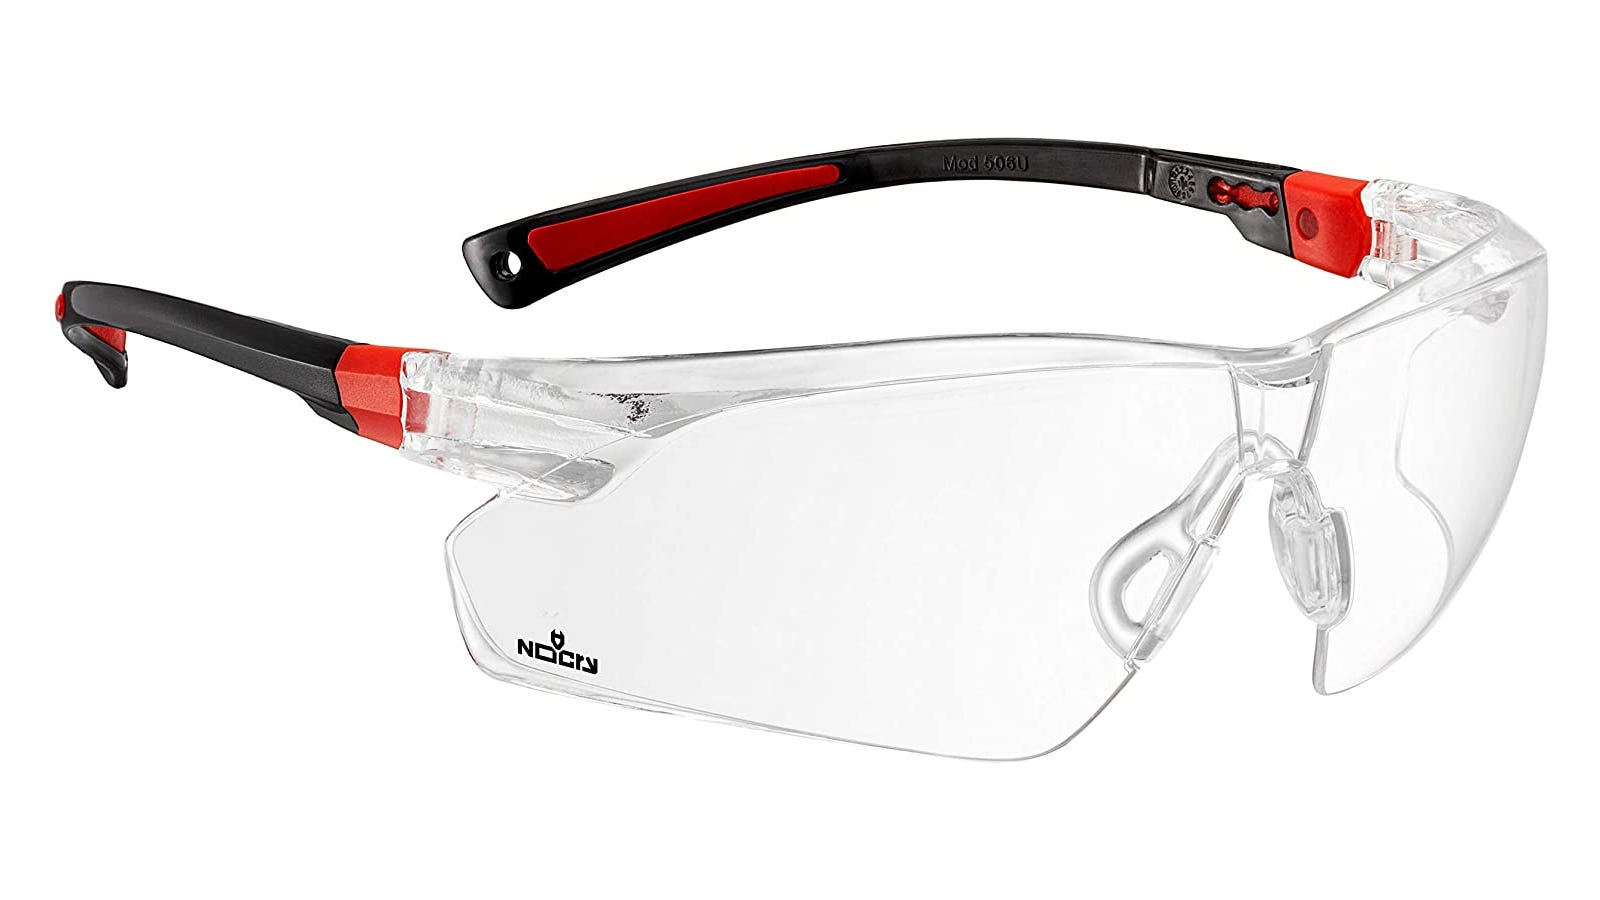 A pair of clear, red and black safety glasses